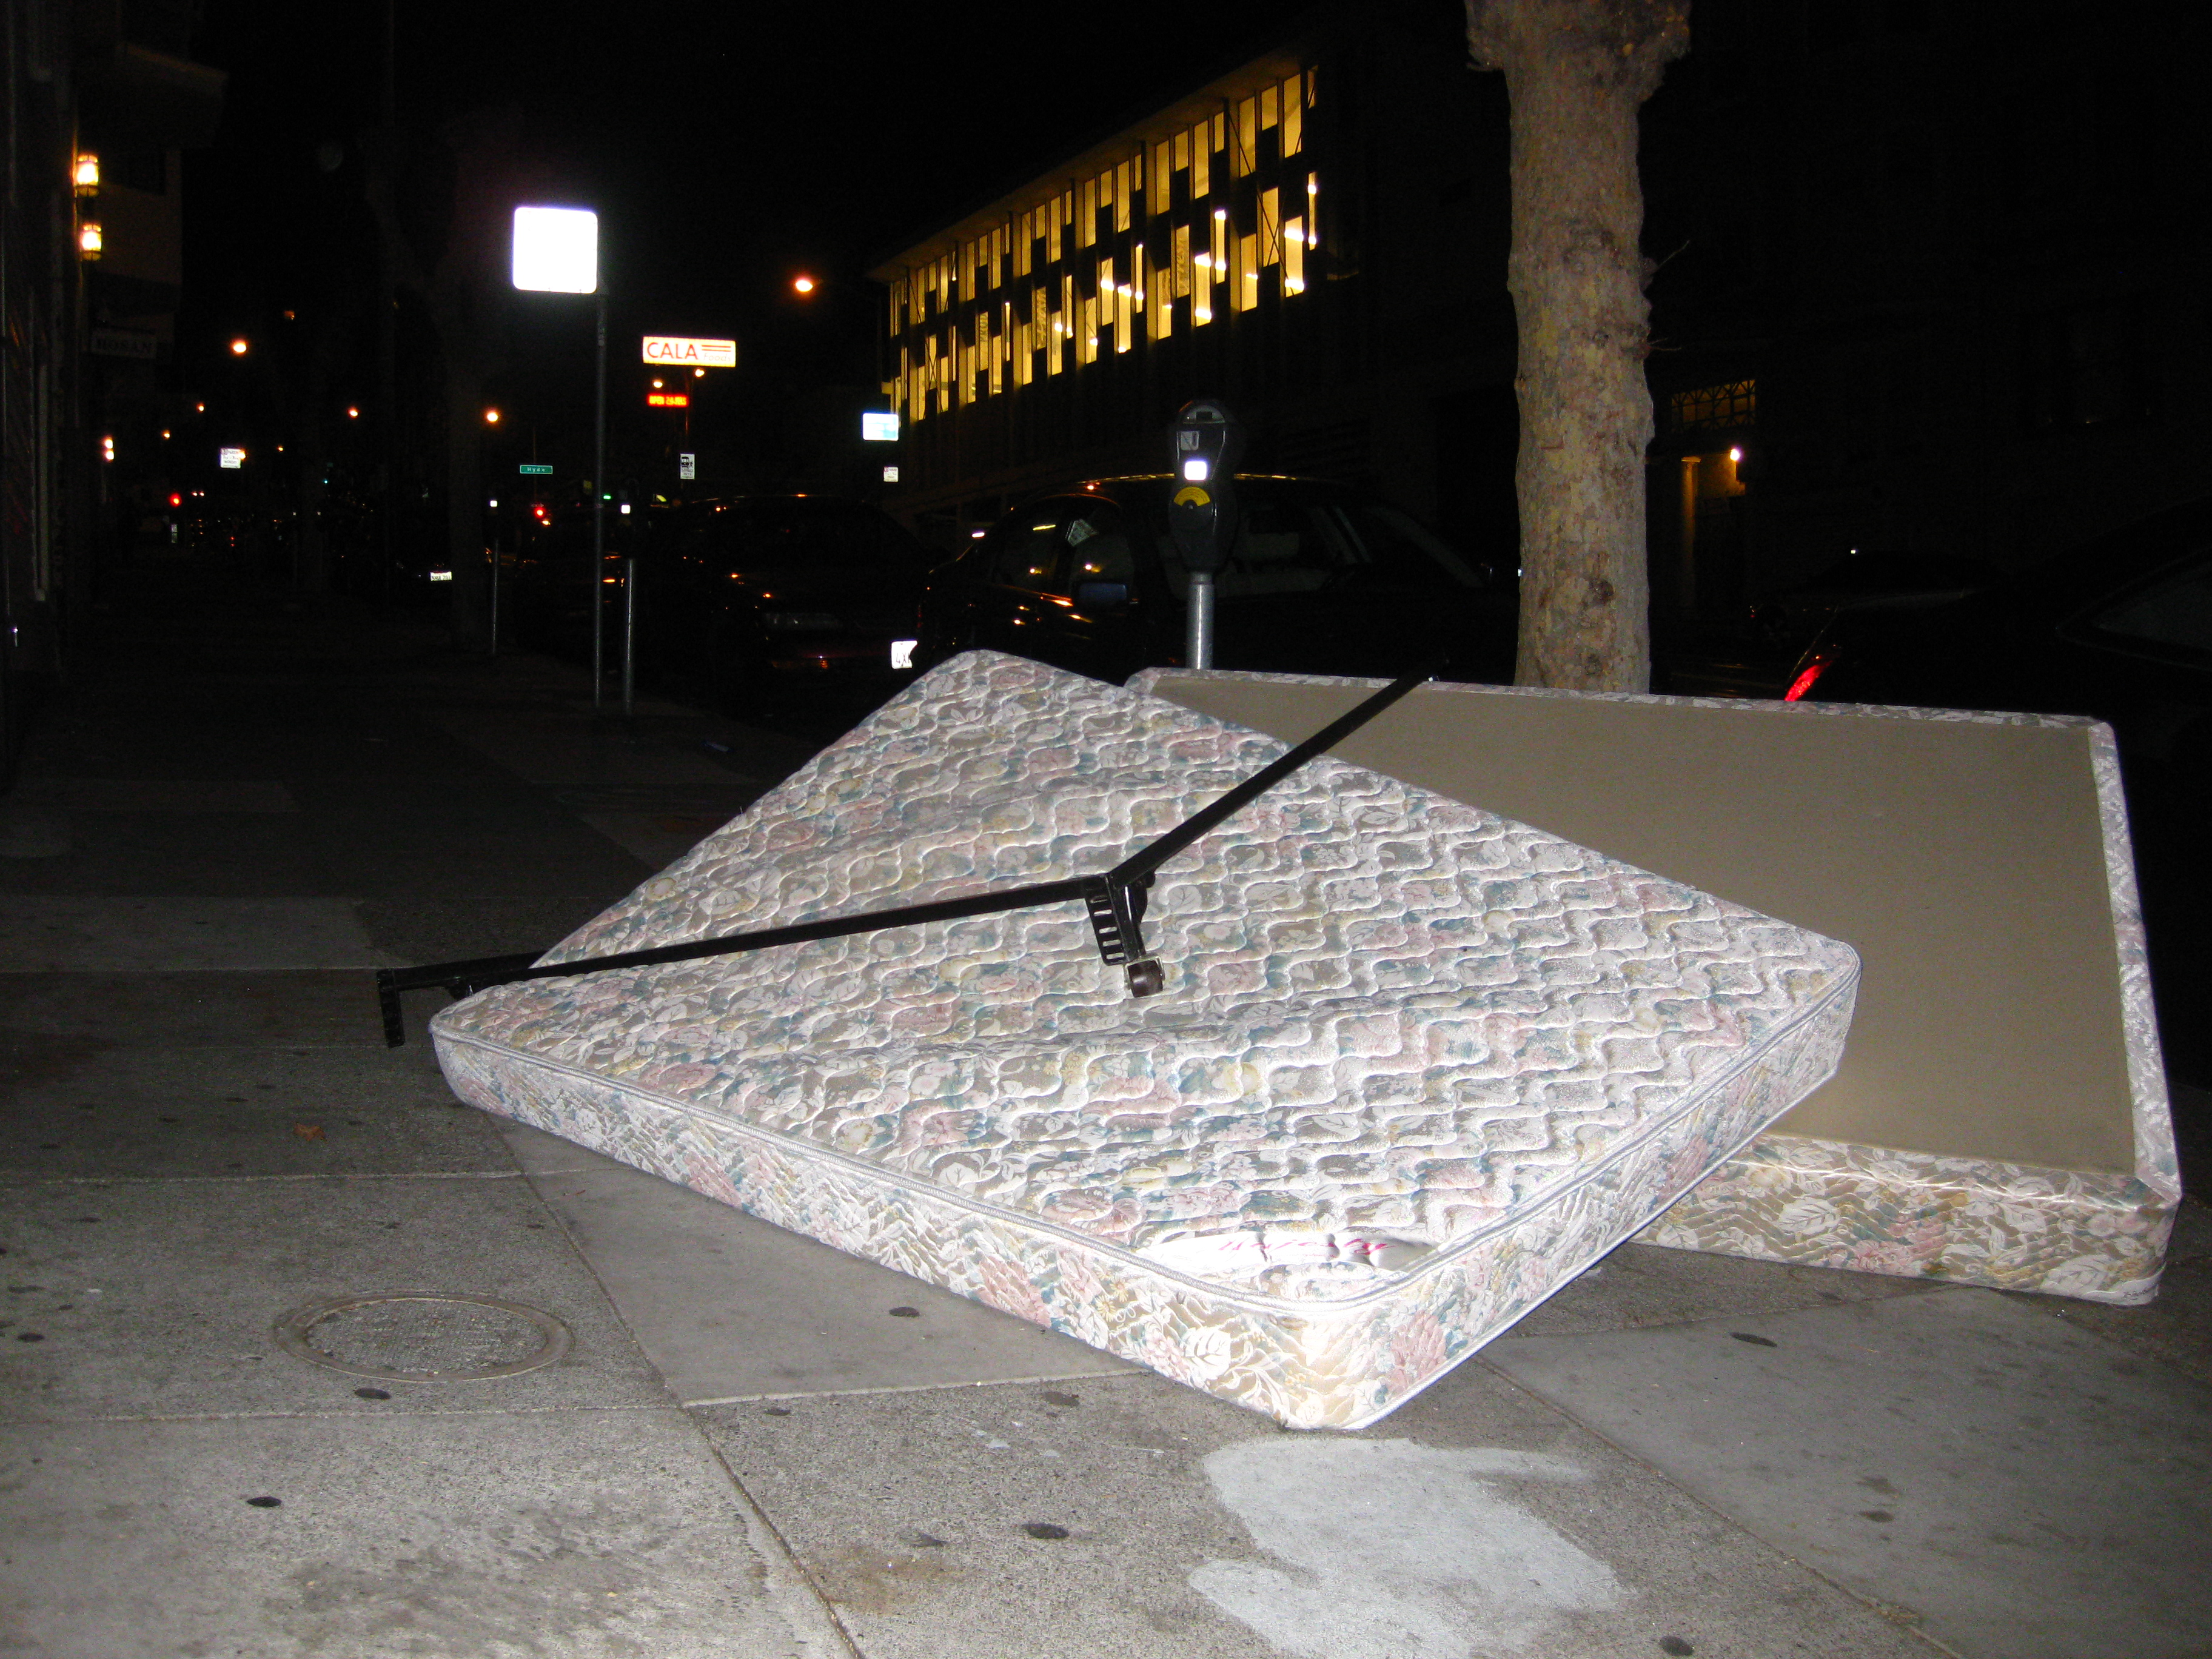 Discarded